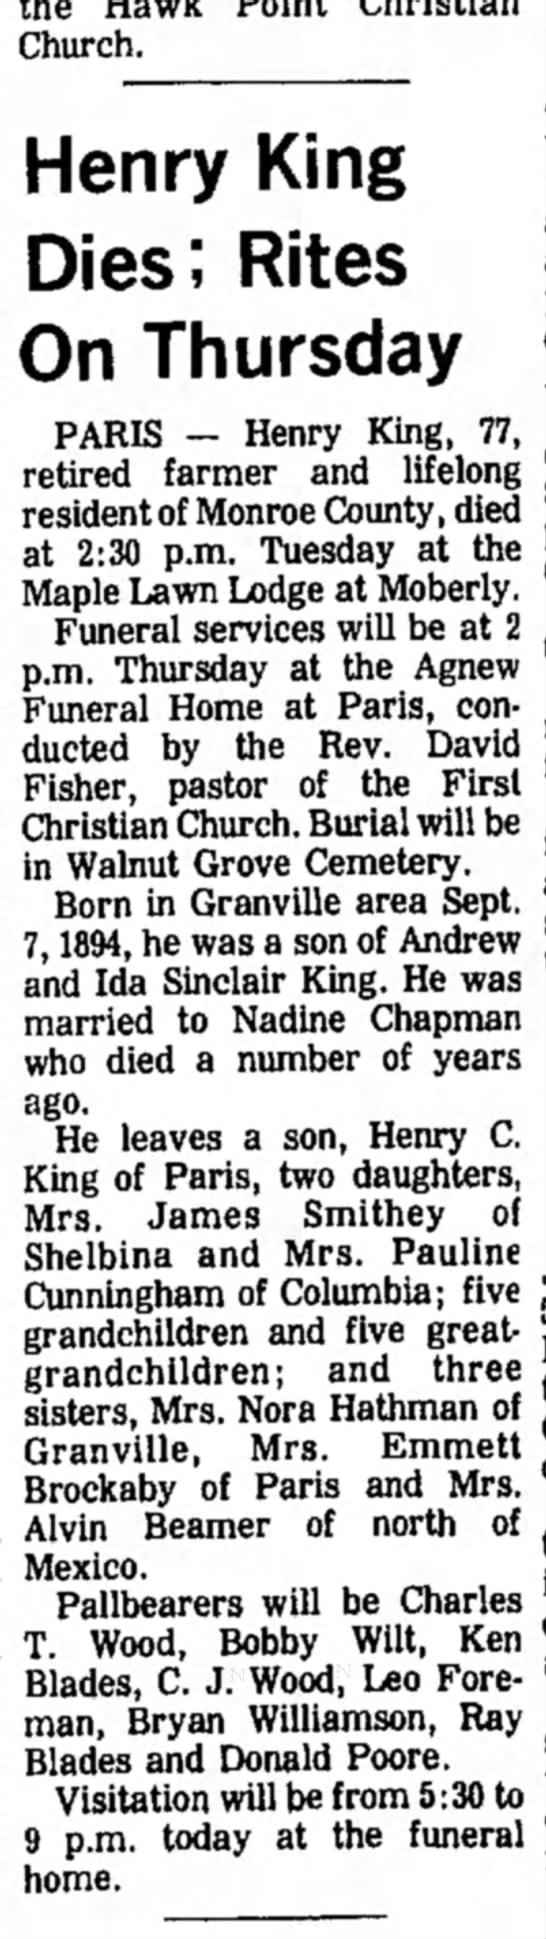 John Henry King Obituary - Church. Henry King Dies; Rites On Thursday...